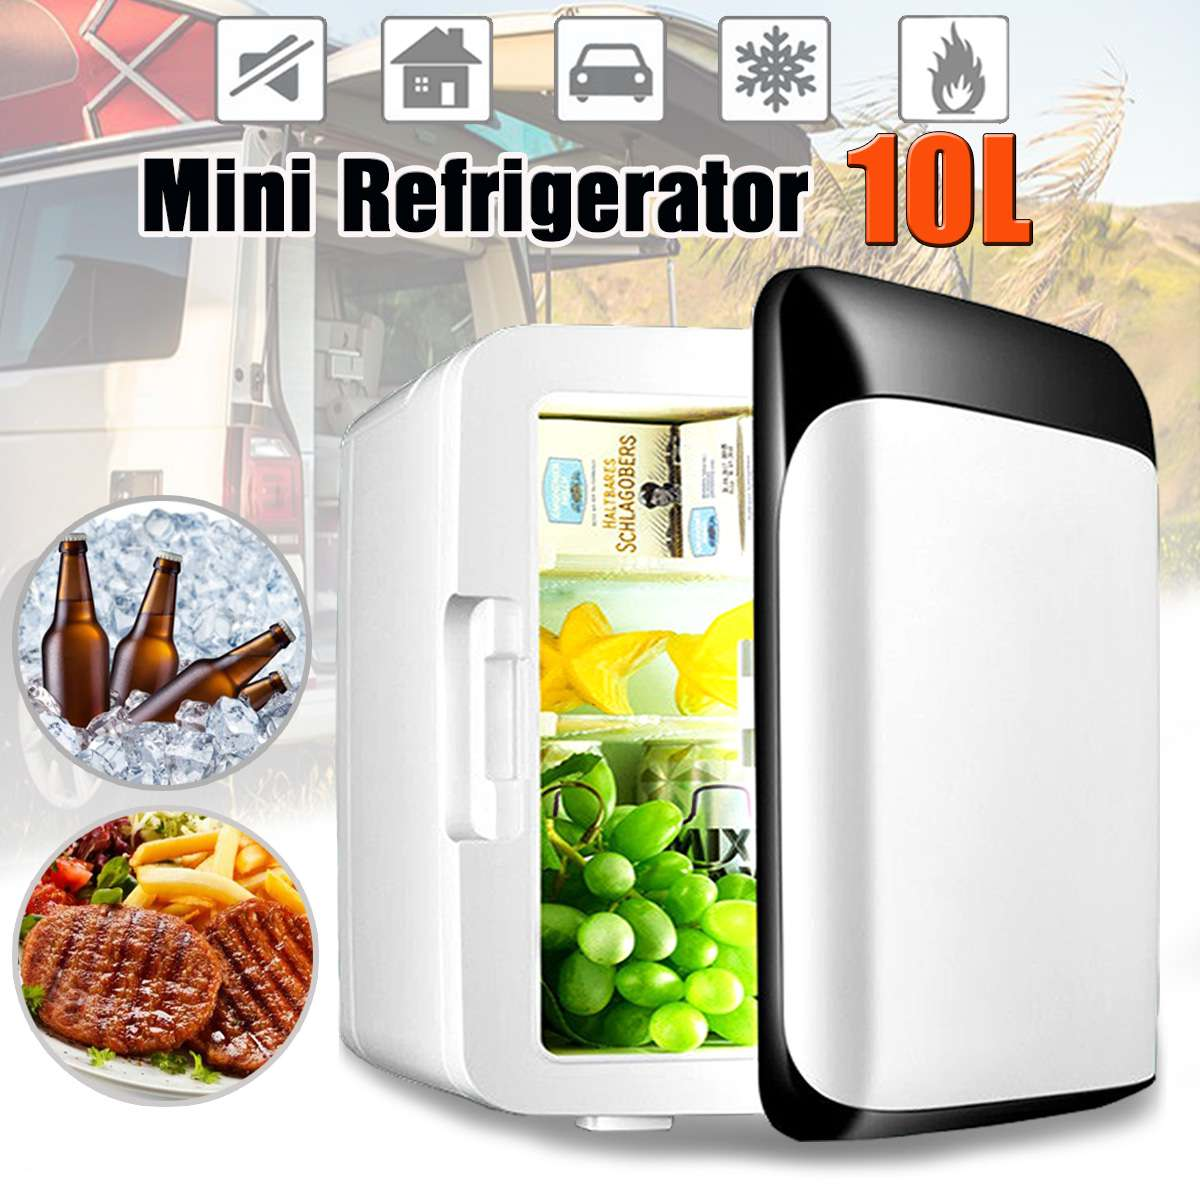 10L Car Refrigerator Mini Fridge Car Home Dual use Small Household Refrigeration Dormitory Mini Freezer With Handle-in Refrigerators from Automobiles & Motorcycles    1